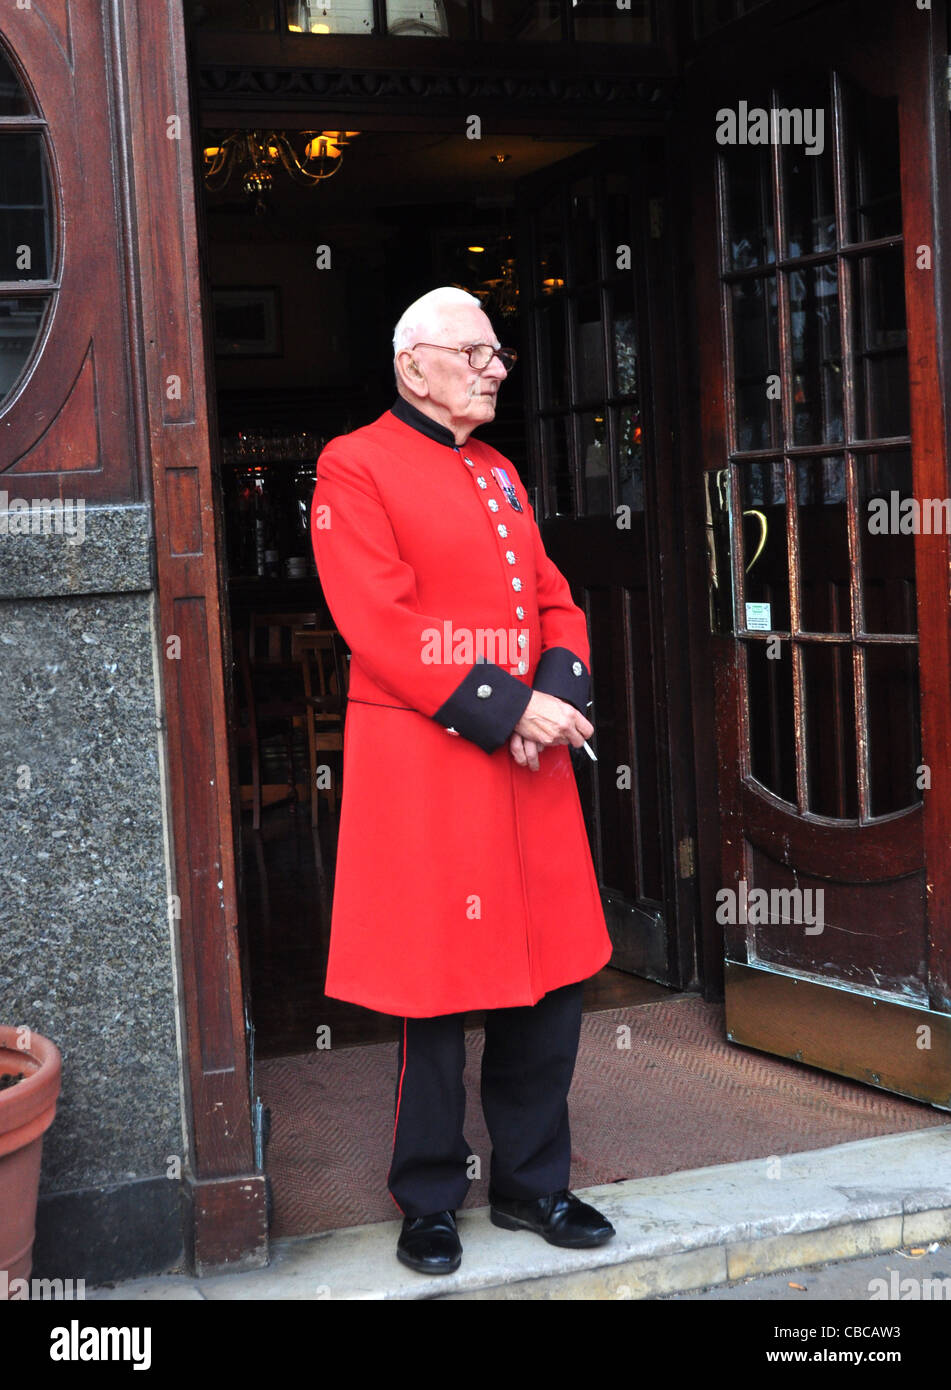 A Chelsea Pensioner at the Albert Pub in London's Victoria Street - Stock Image